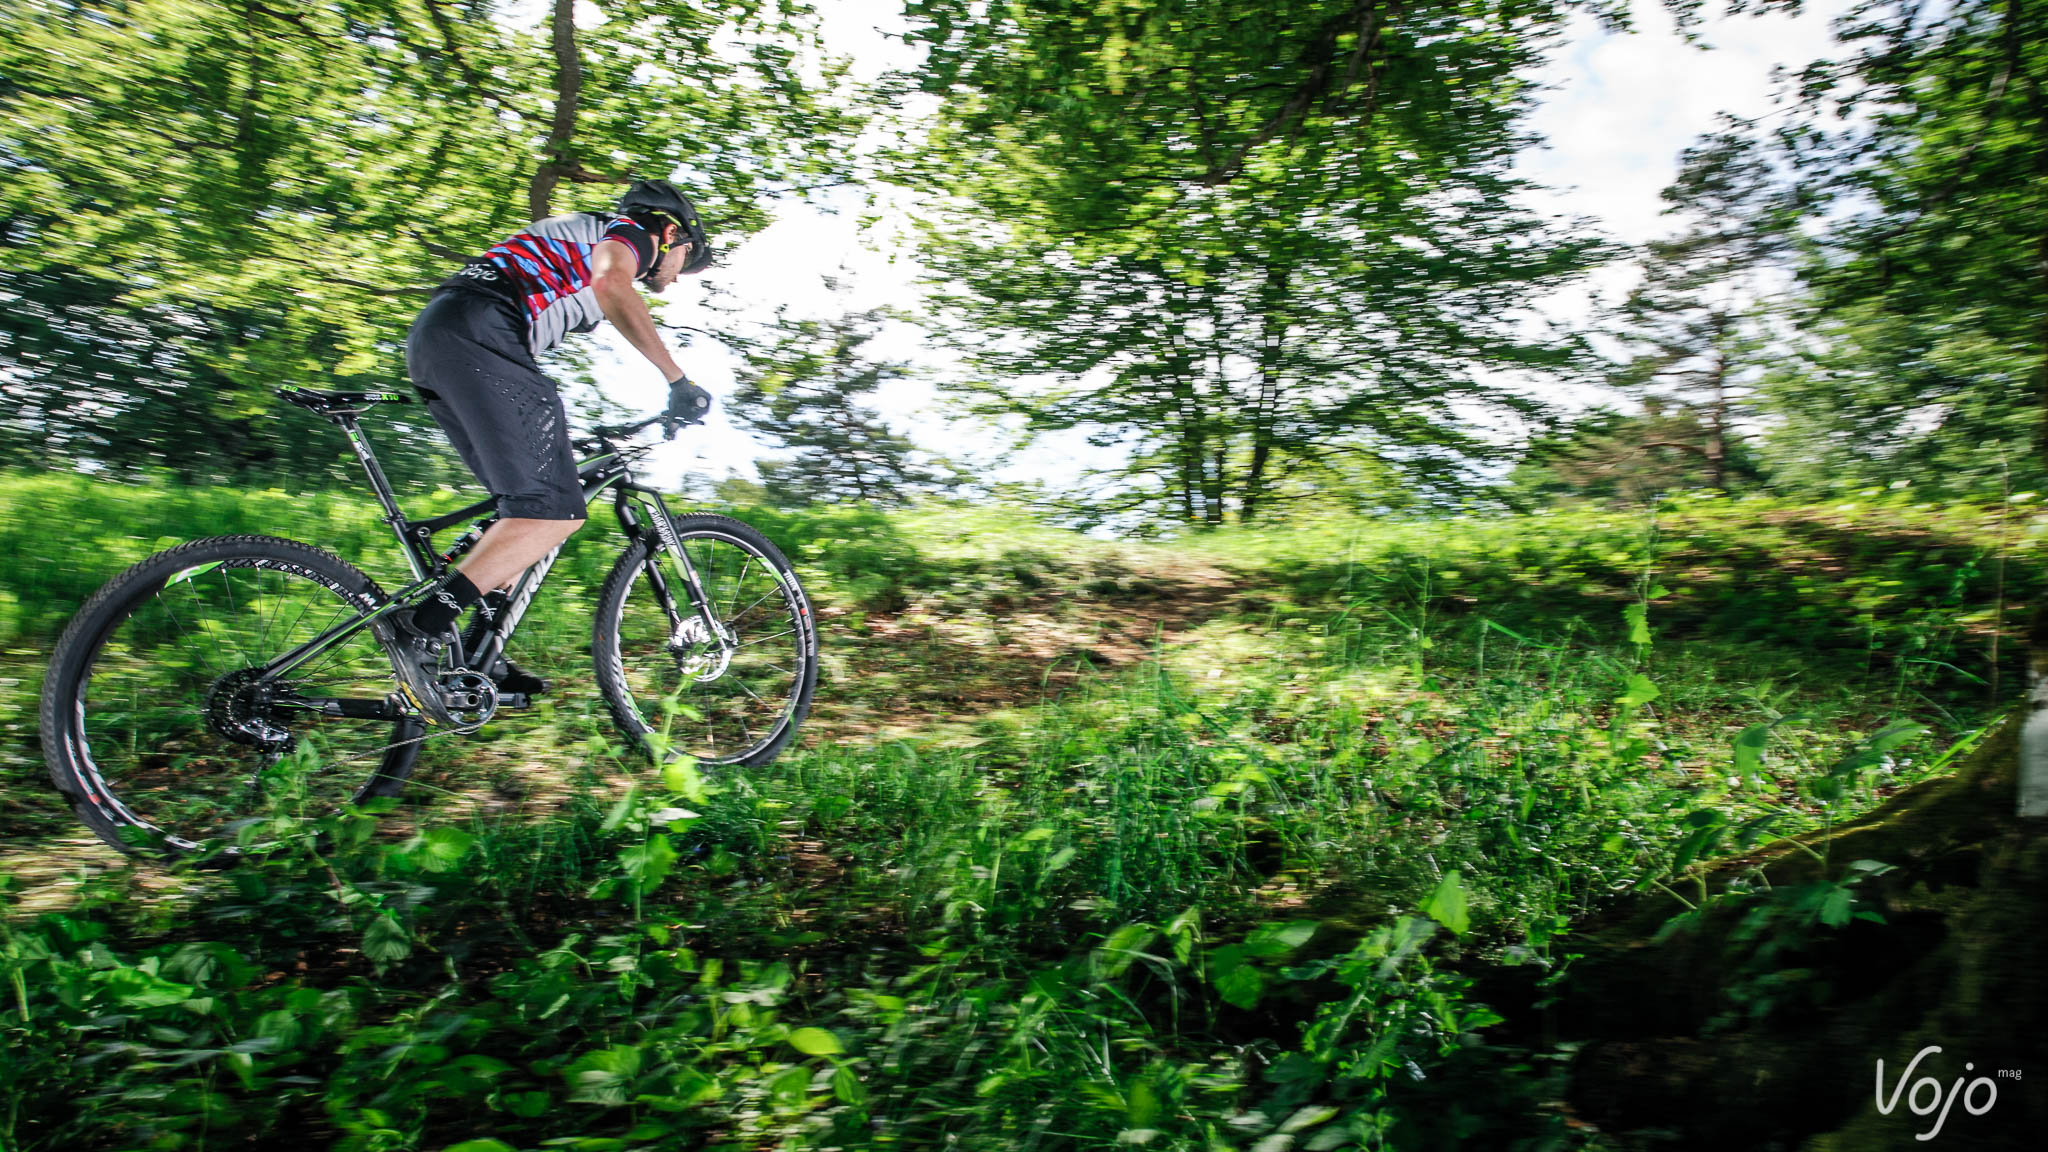 Merida_96_nouveaute_2016_Action_test_Copyright_MTBCult_OBeart_VojoMag-8